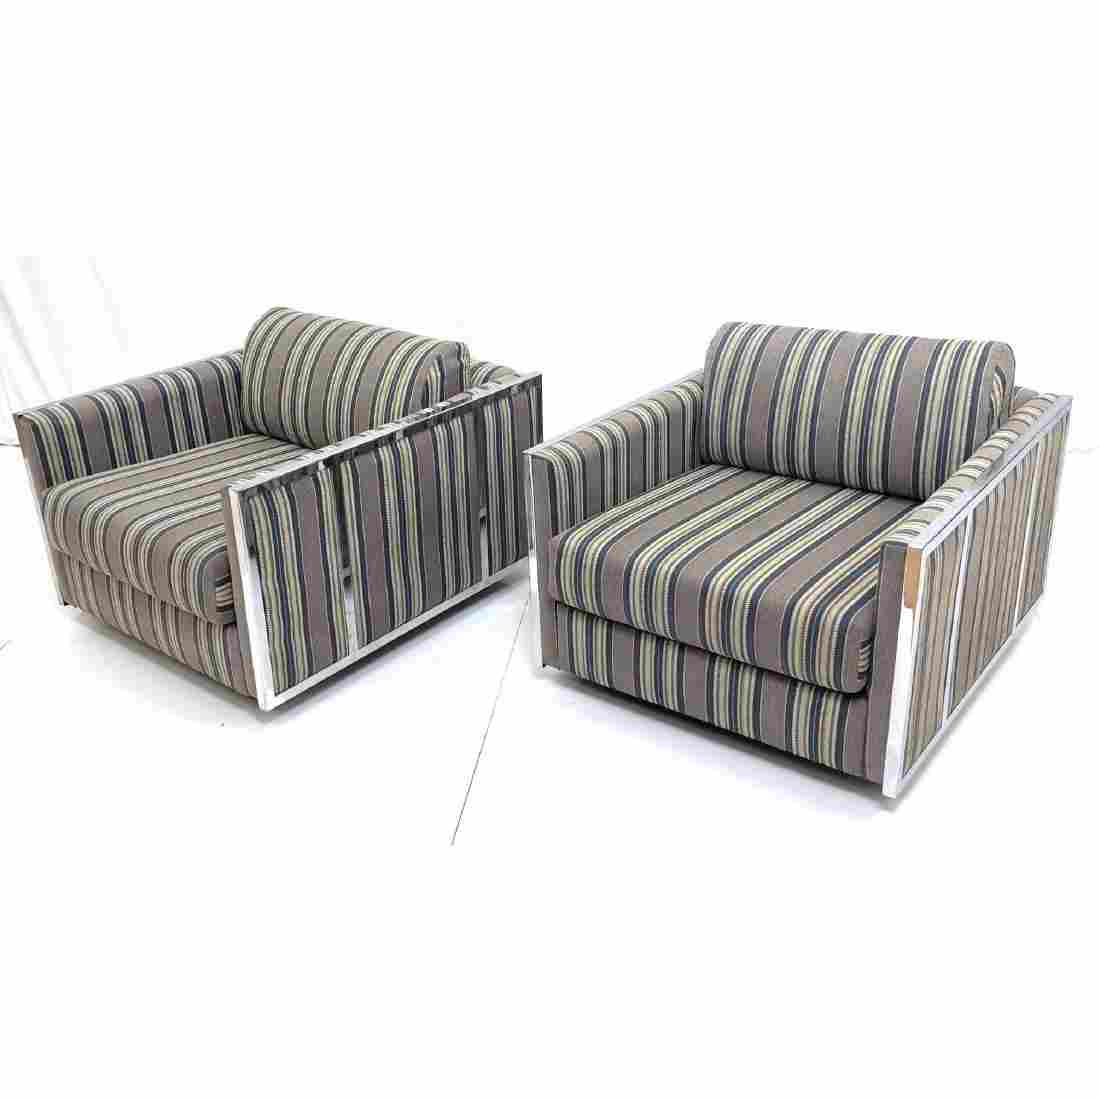 Pr Chrome Frame Upholstered Cube Lounge Chairs. M